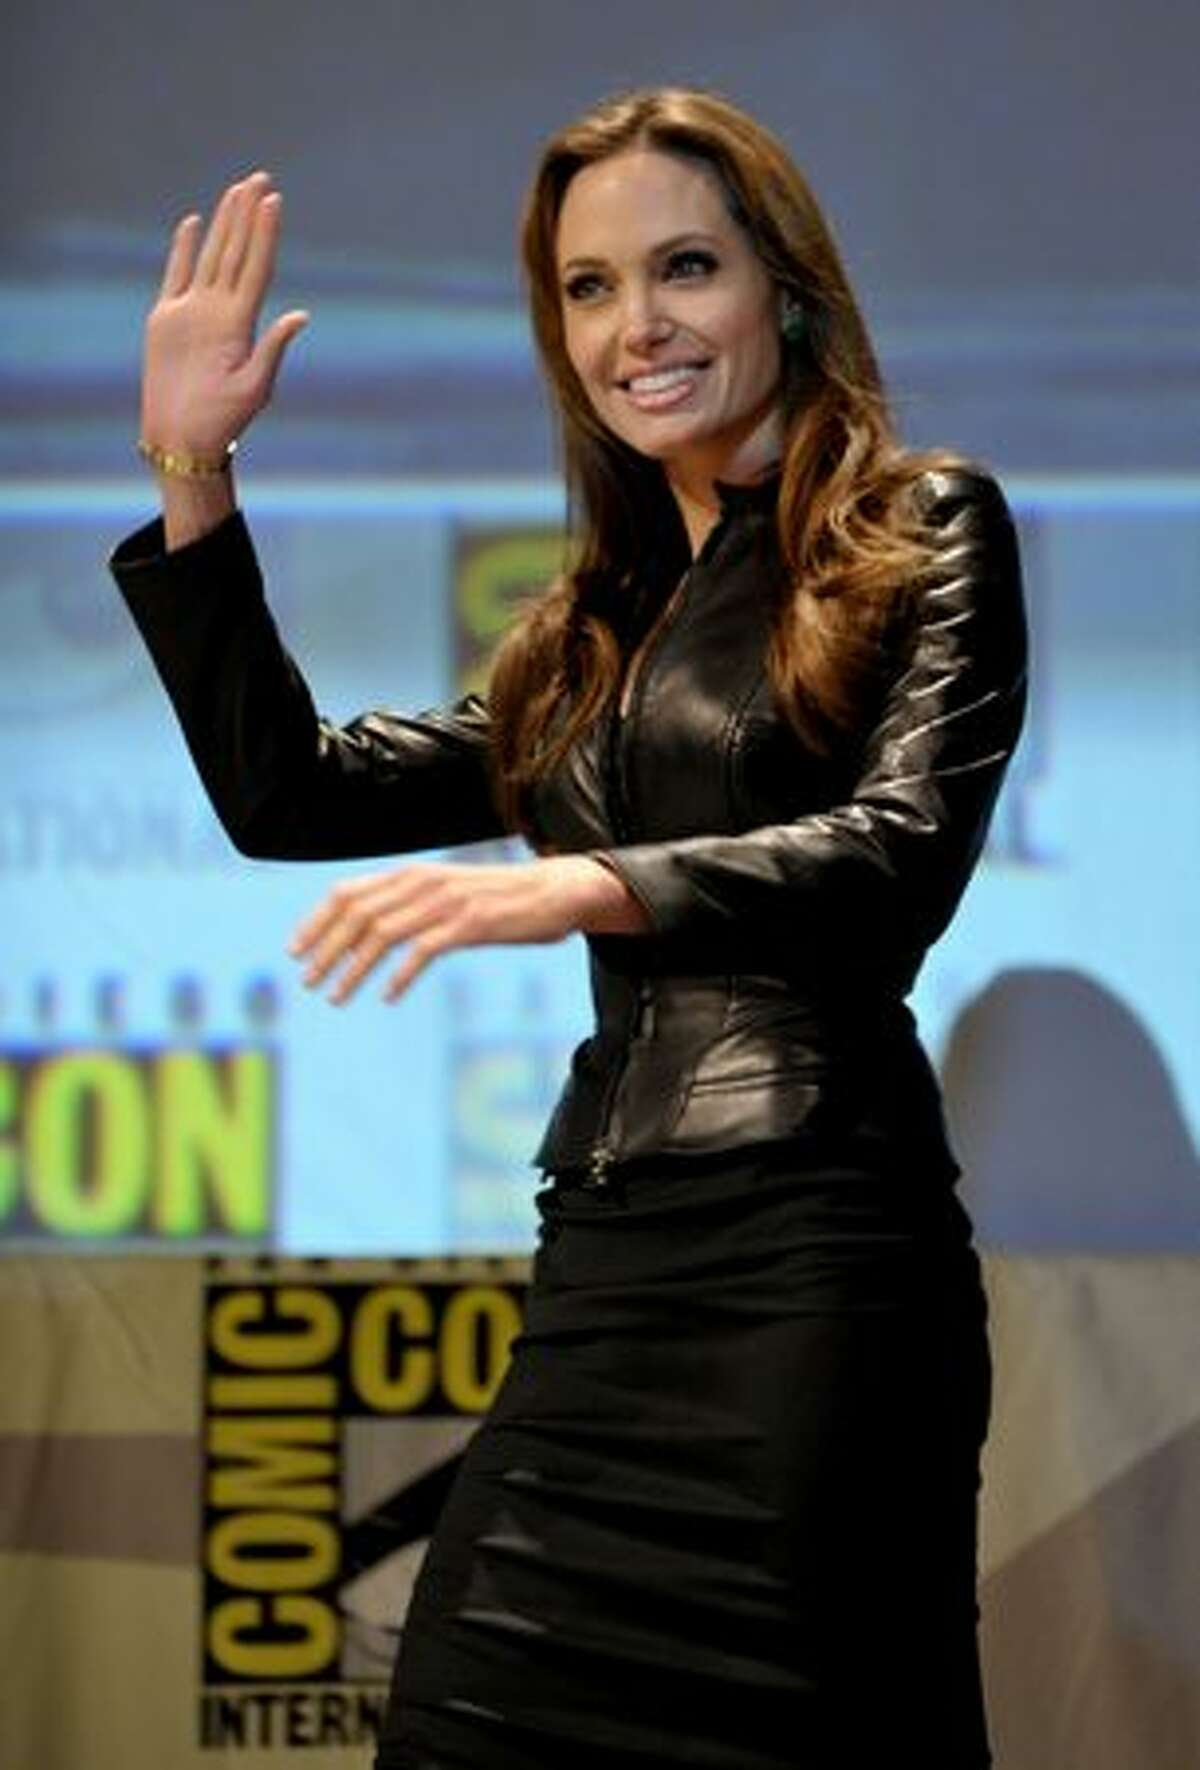 """Actress Angelina Jolie walks onstage at the """"Salt"""" panel during Comic-Con 2010 at San Diego Convention Center in San Diego, California. (Photo by Kevin Winter/Getty Images)"""